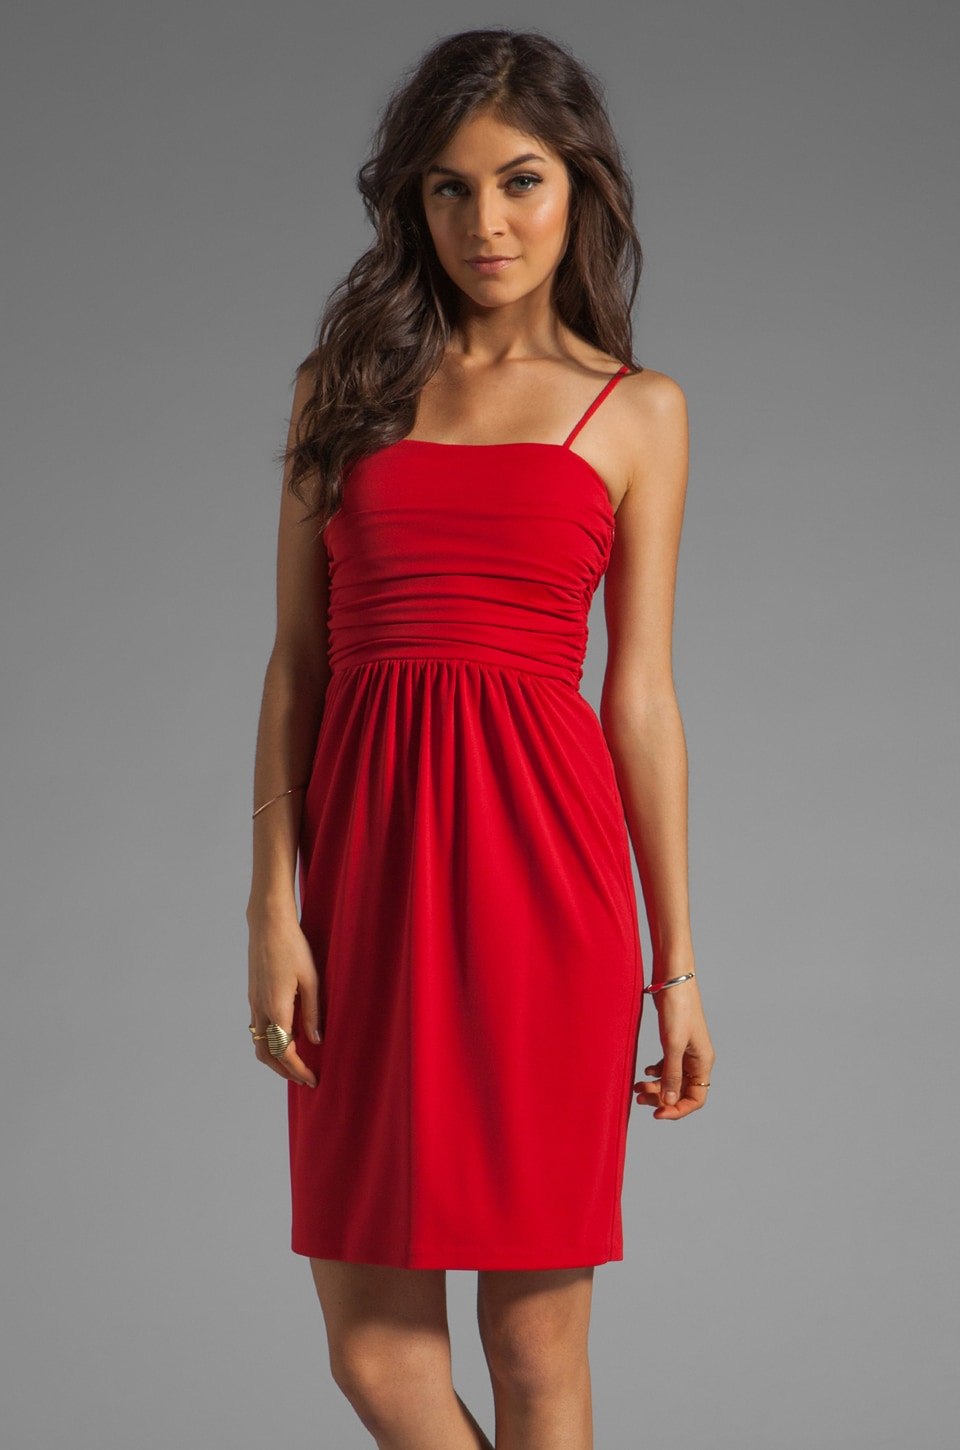 Susana Monaco Julie Dress in Pepper